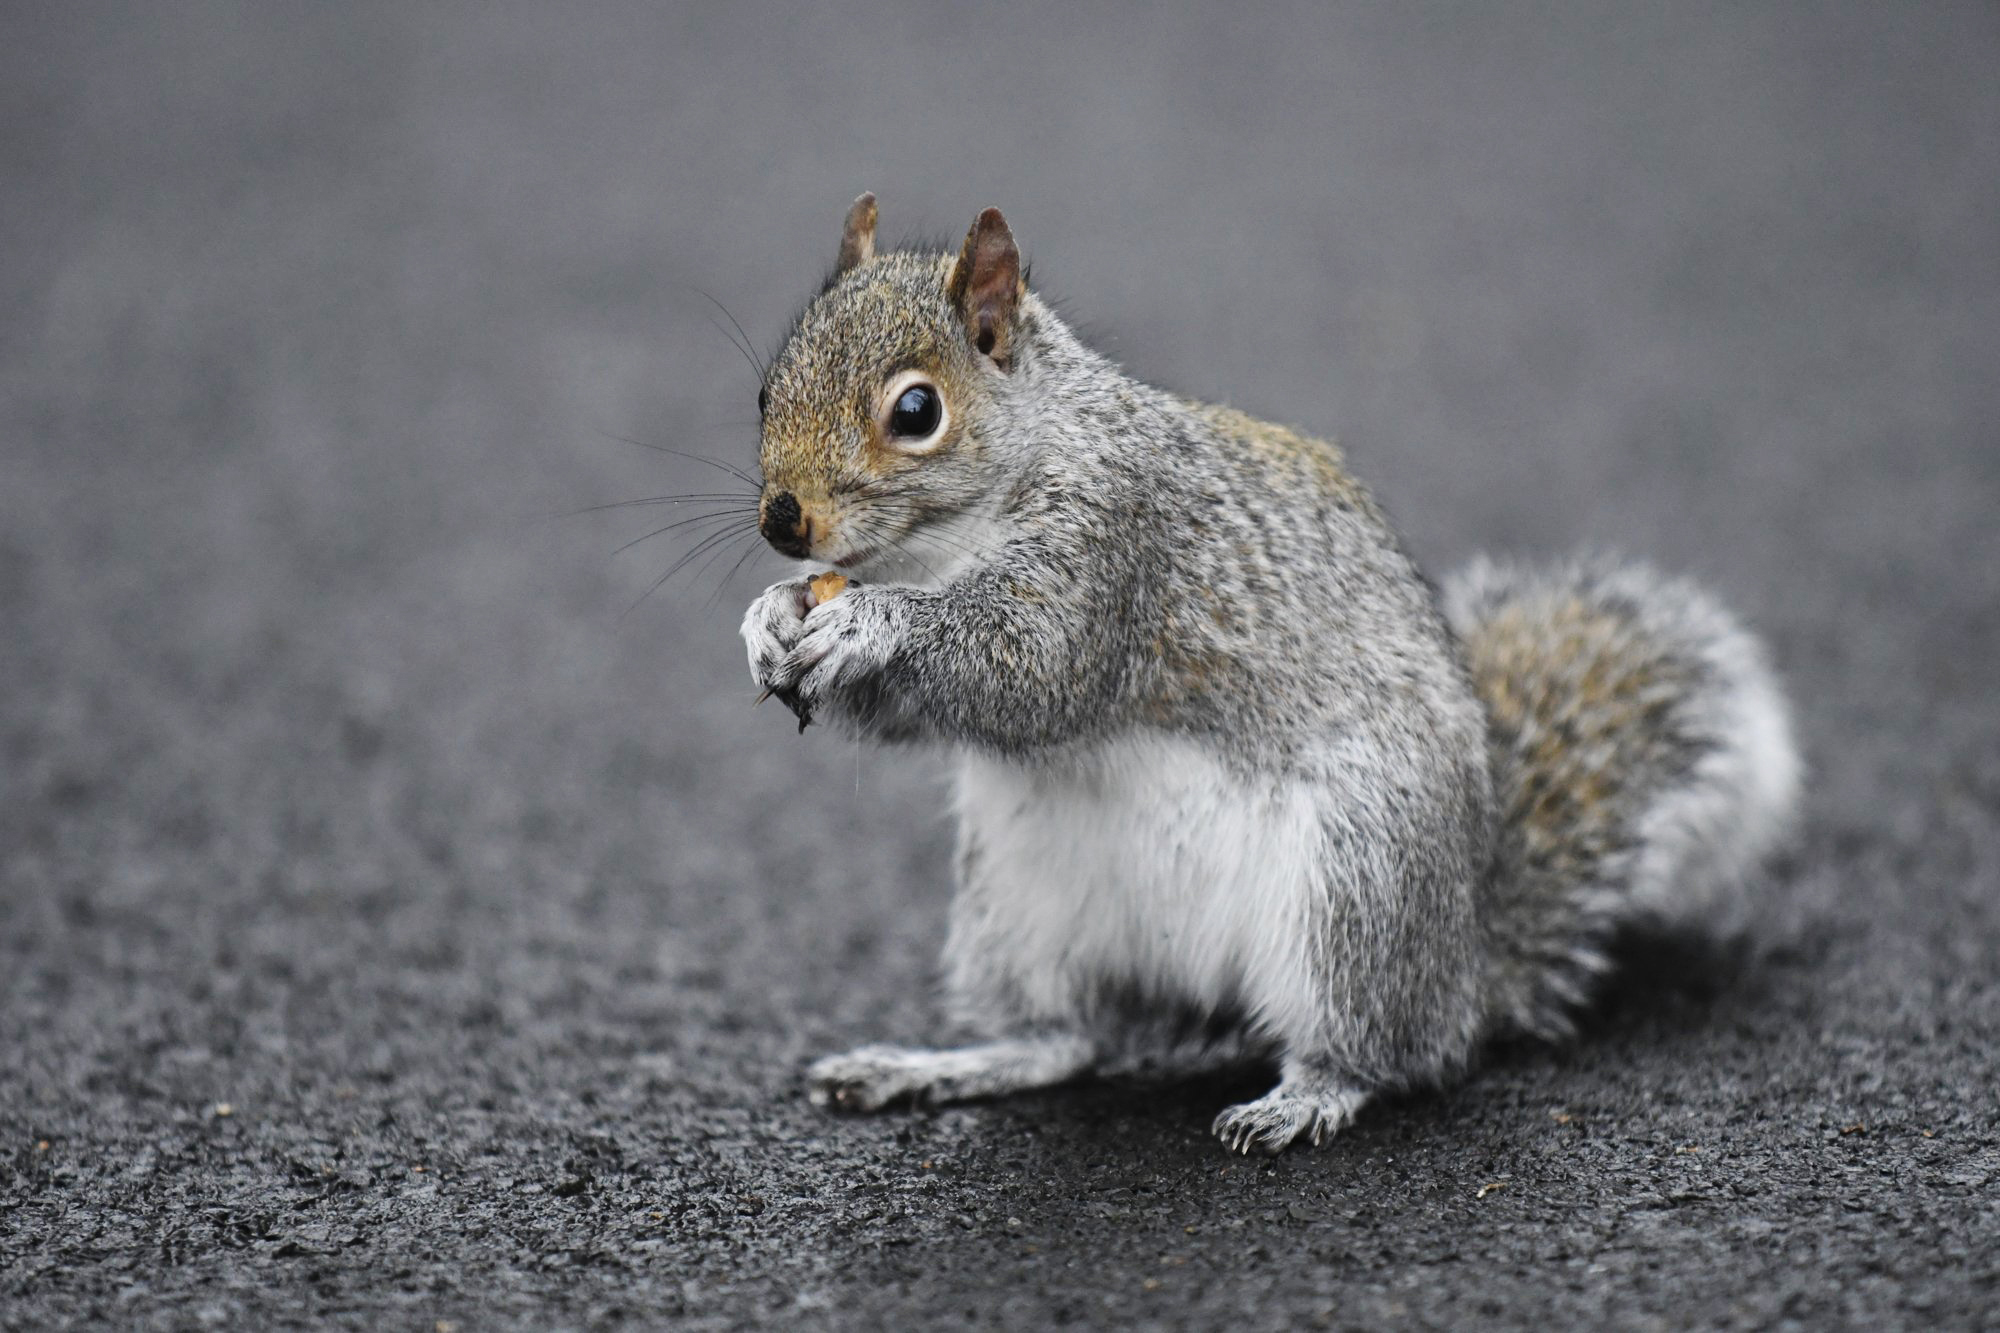 A squirrel trashed home of family on vacation, and insurance won't pay